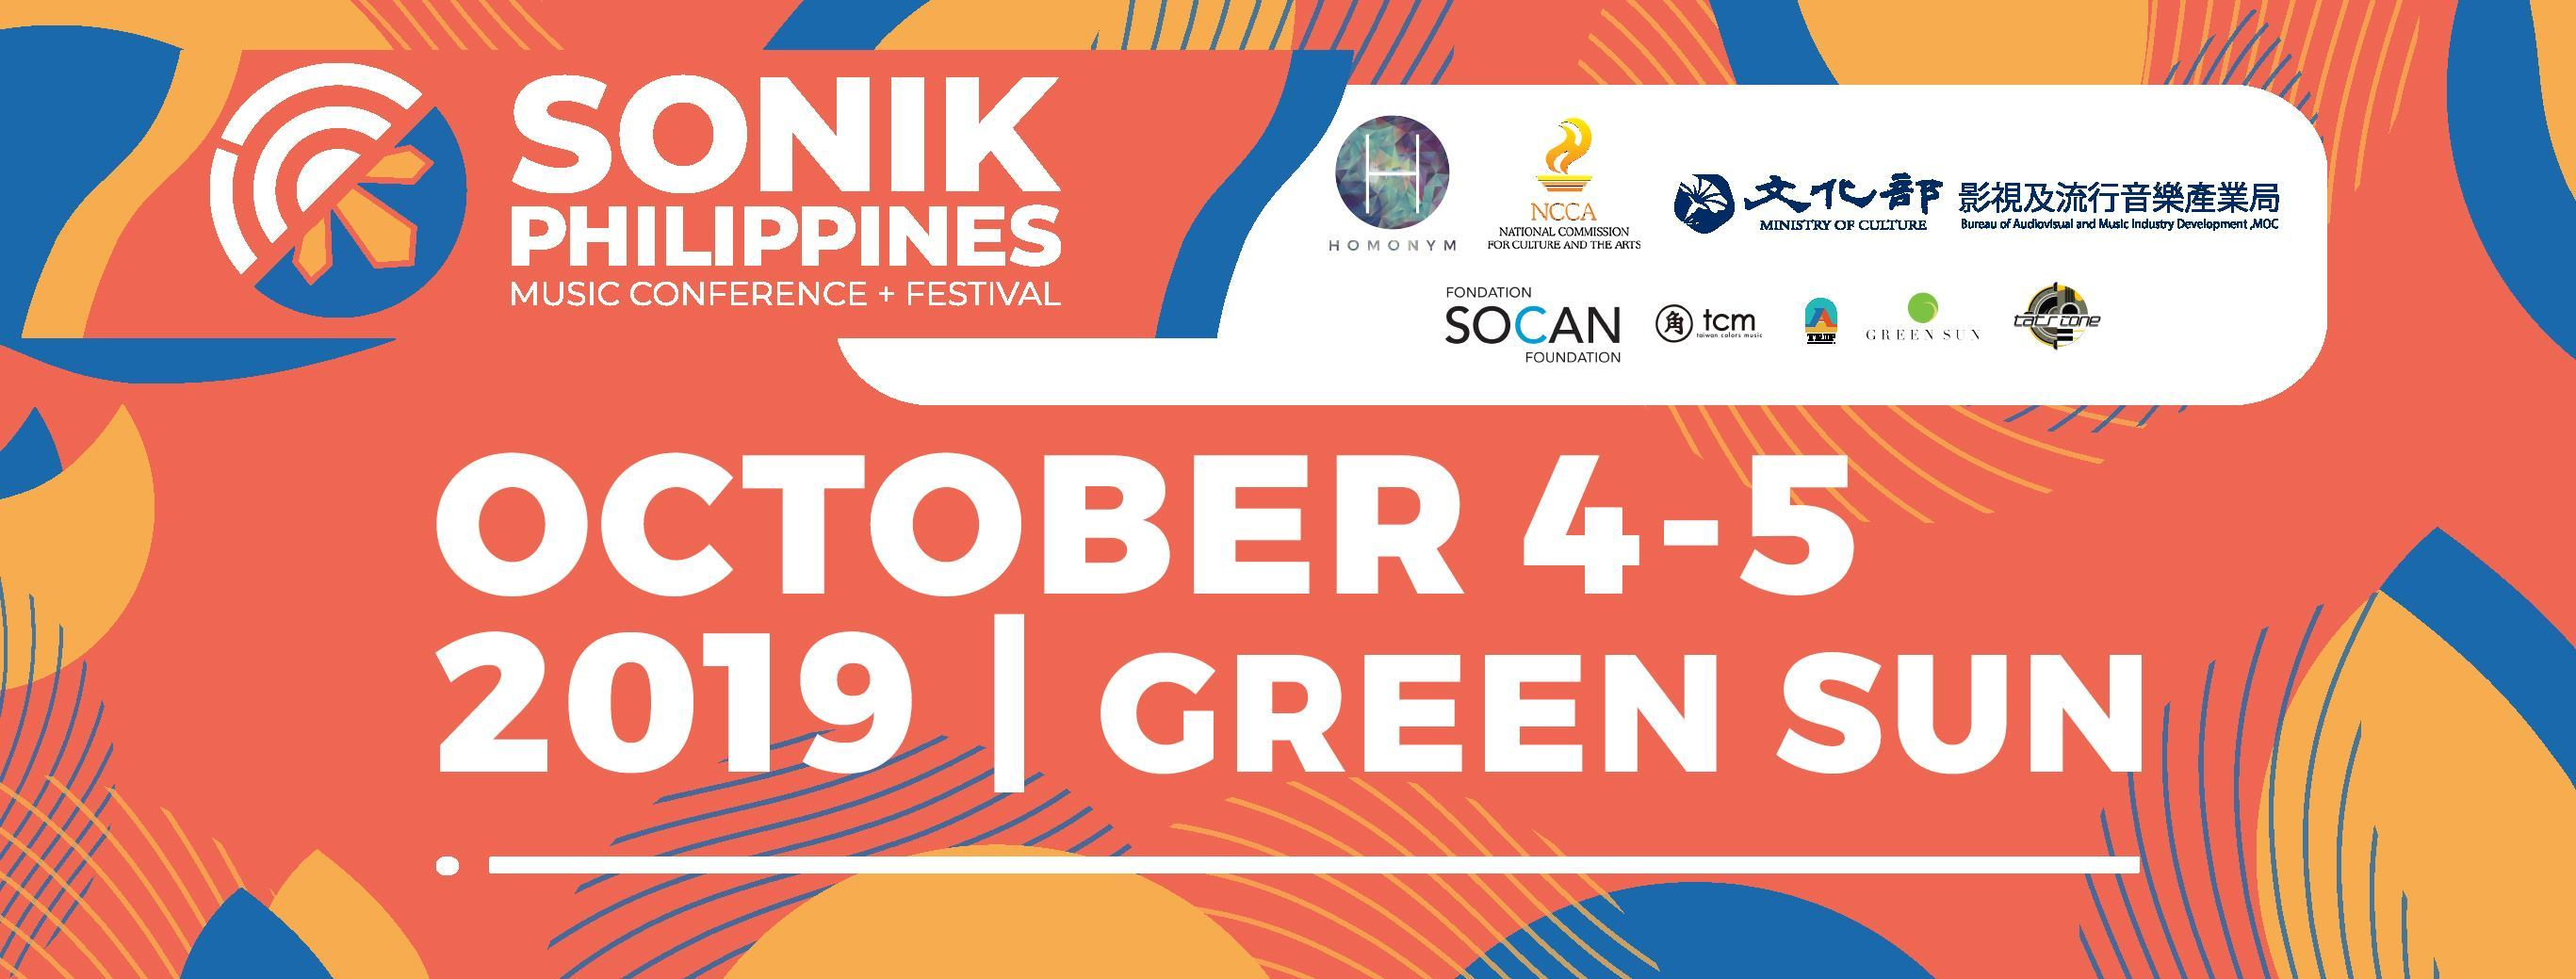 The Philippines' First-Ever International Music Conference and Festival is Happening On October